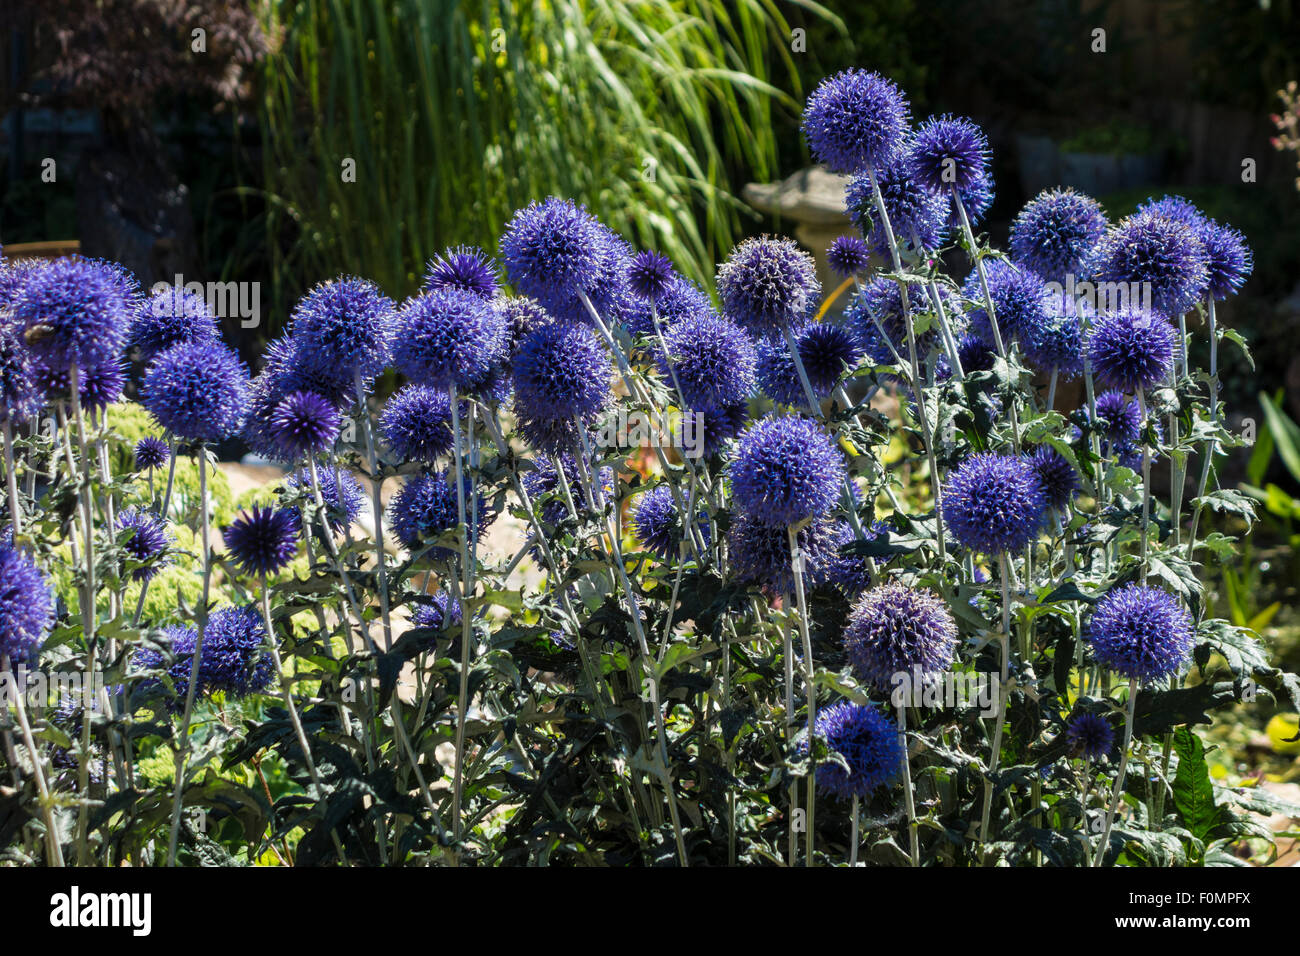 Echinops Veitch's Blue, Globe Thistle. - Stock Image